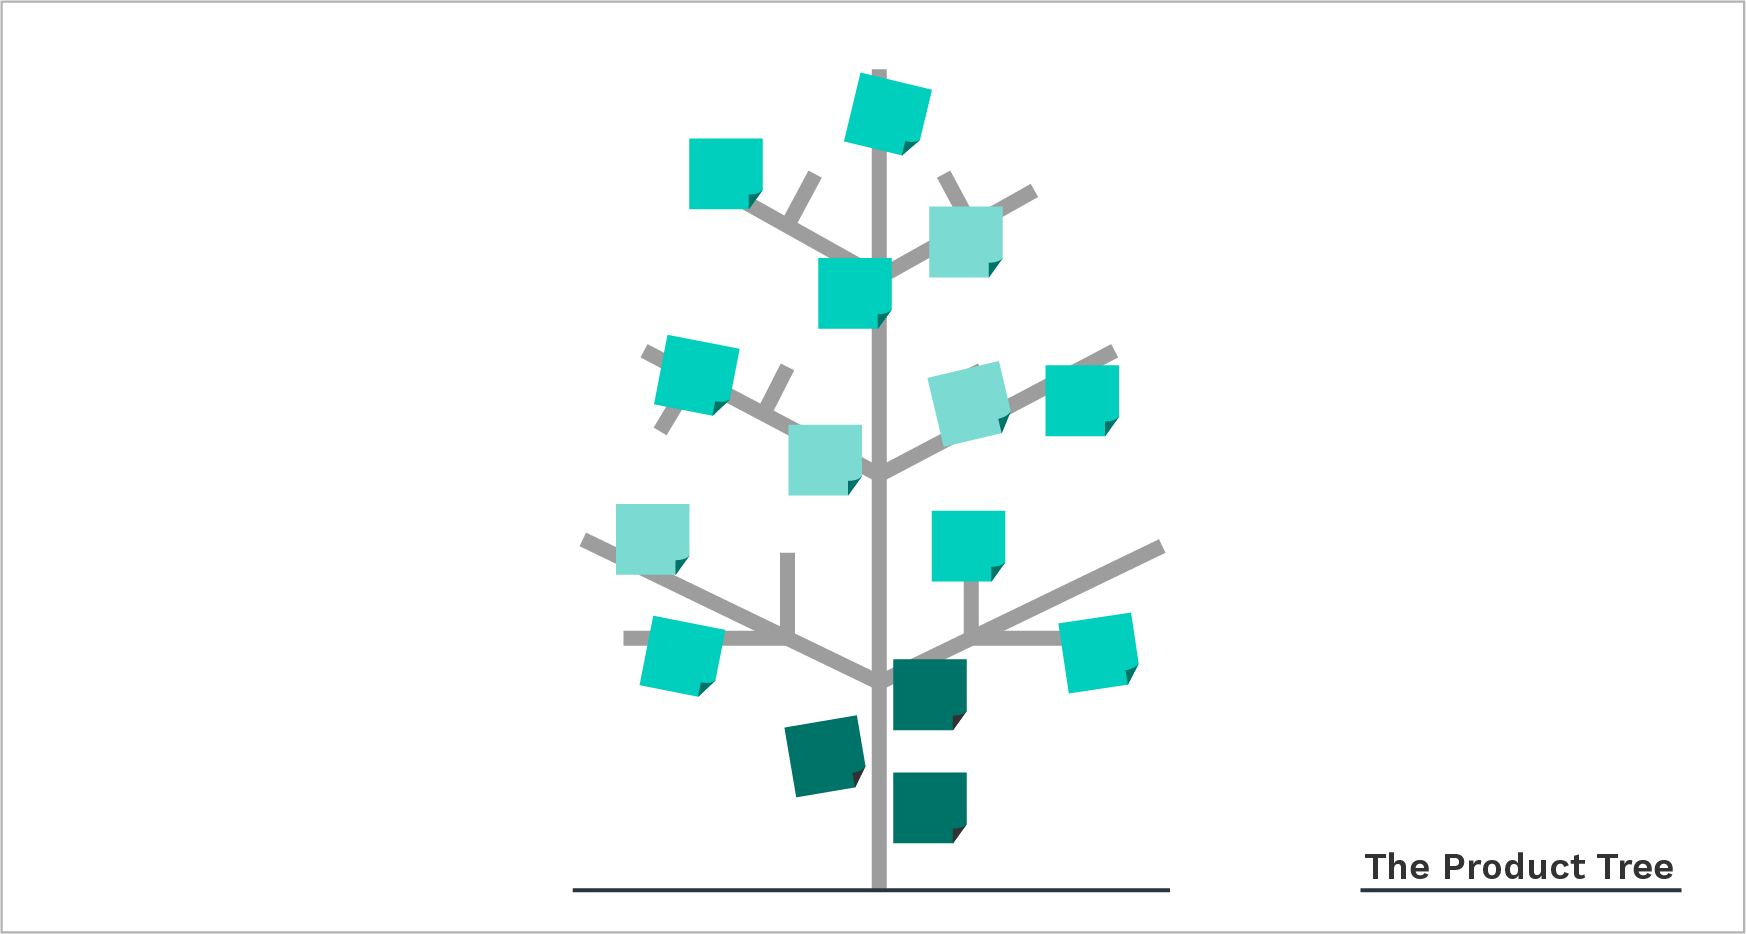 product tree - product prioritization framework